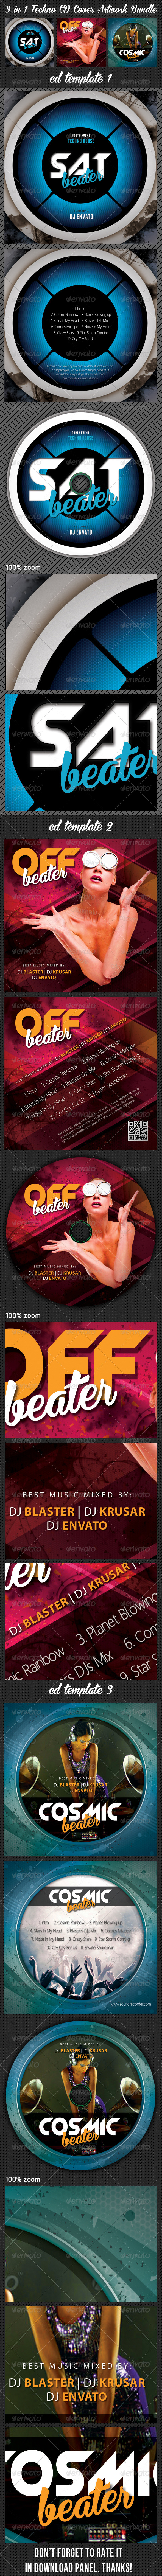 GraphicRiver 3 in 1 Techno CD Cover Artwork Bundle 02 7795708